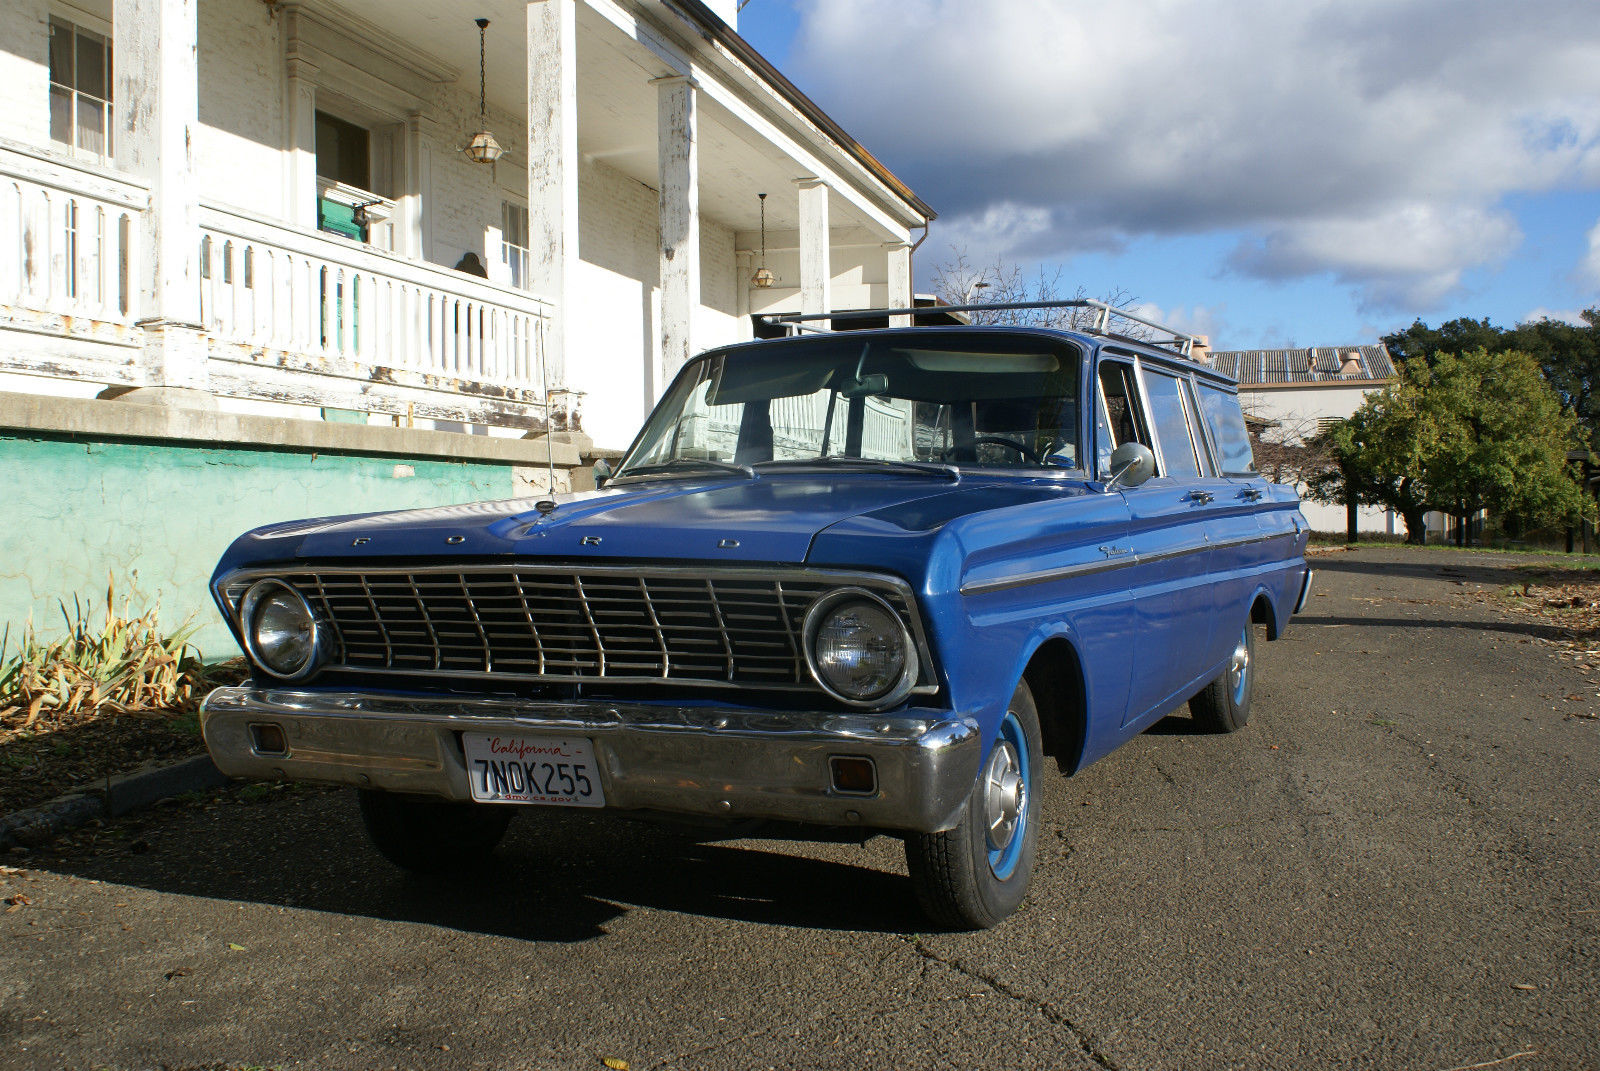 1964 Ford Falcon Station Wagon For Sale